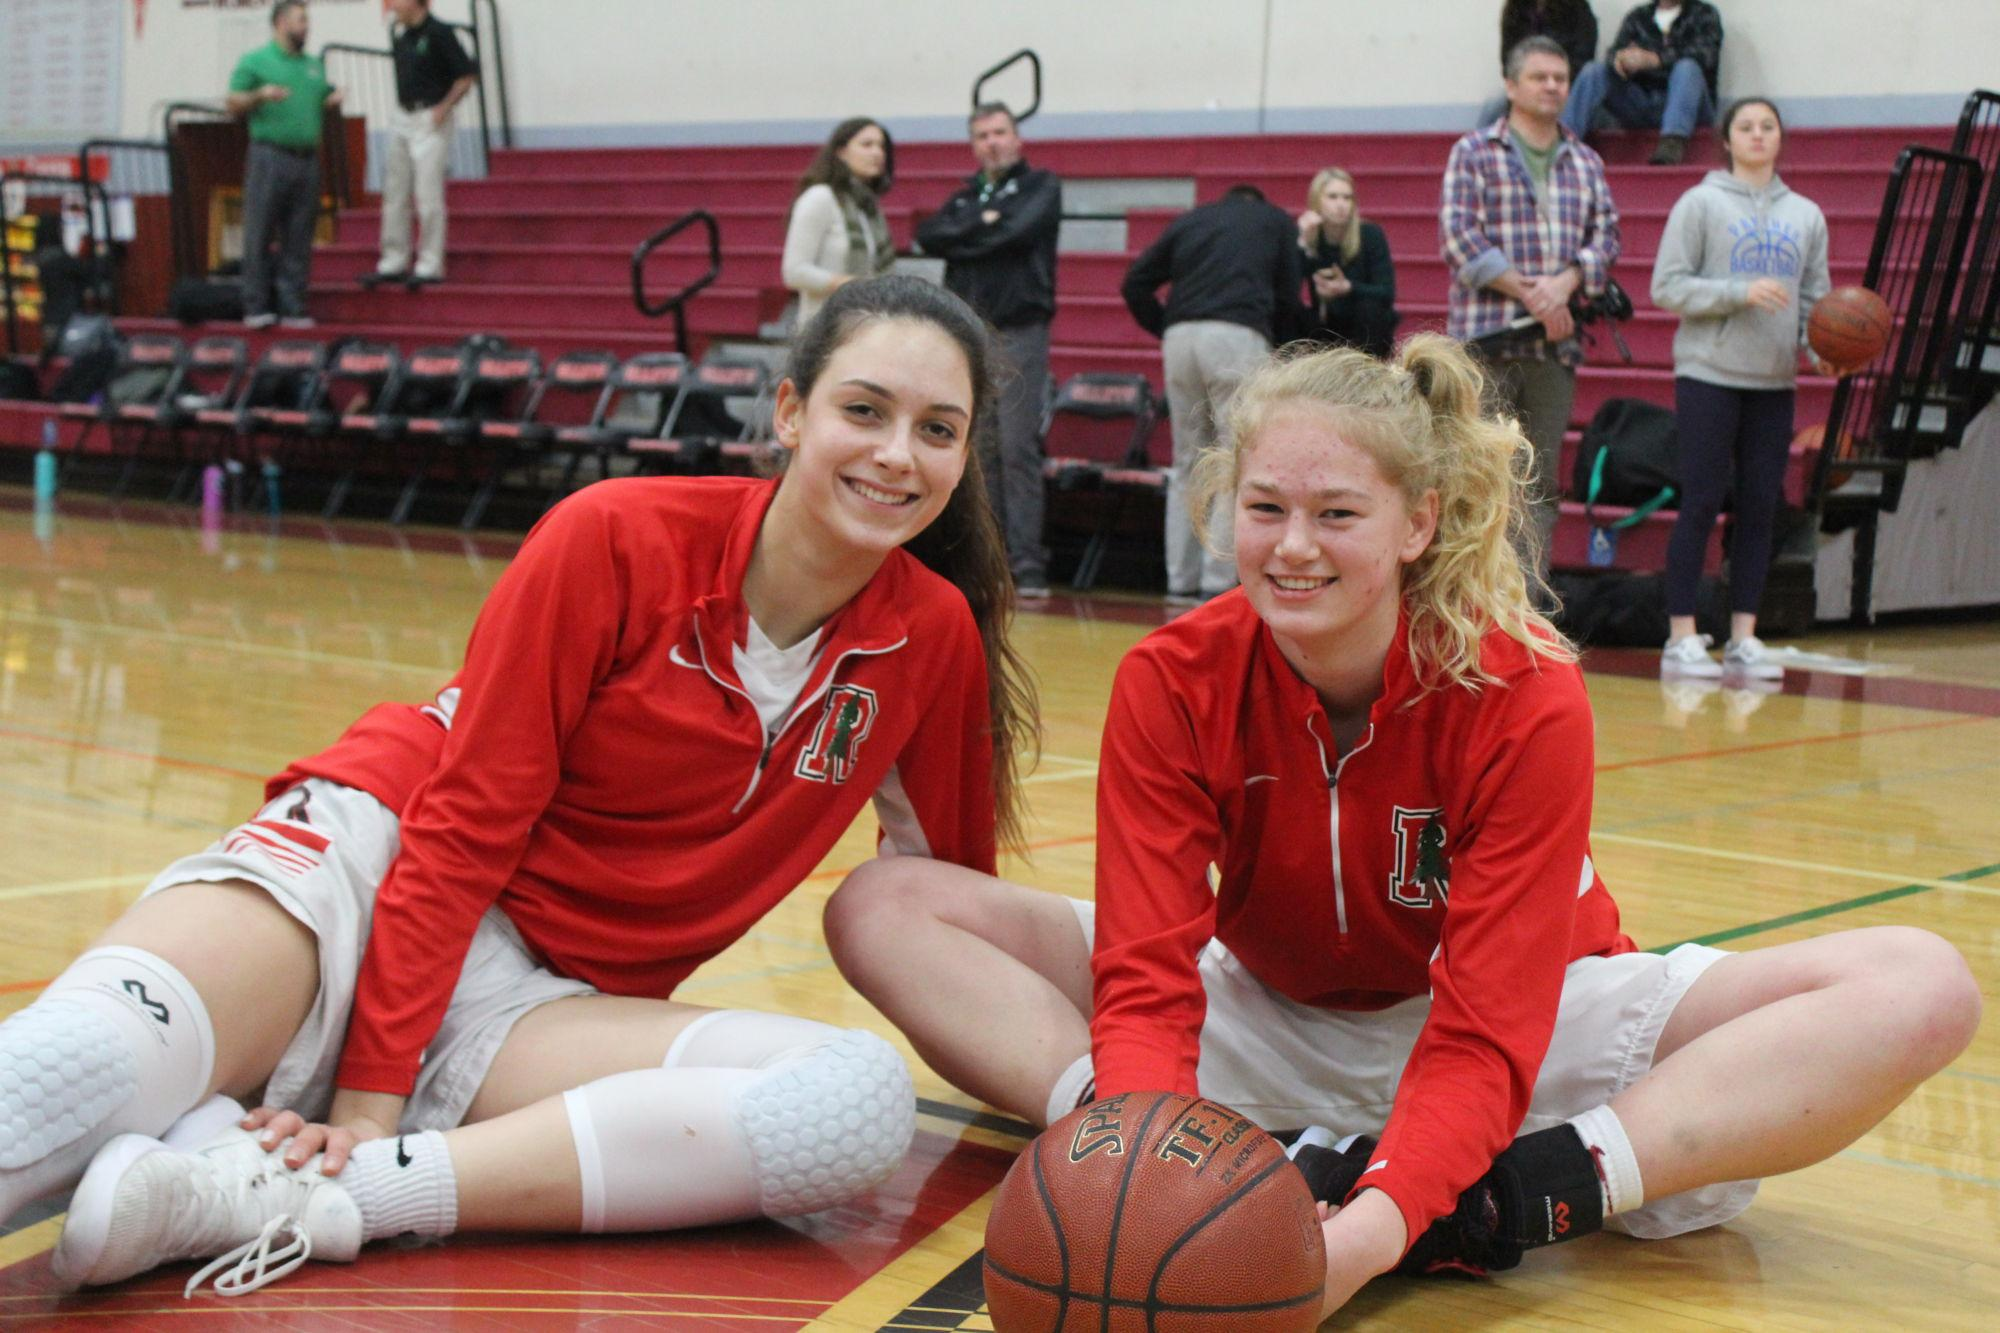 Sports Spotlight: Powerhouse duo steers basketball team to driving success